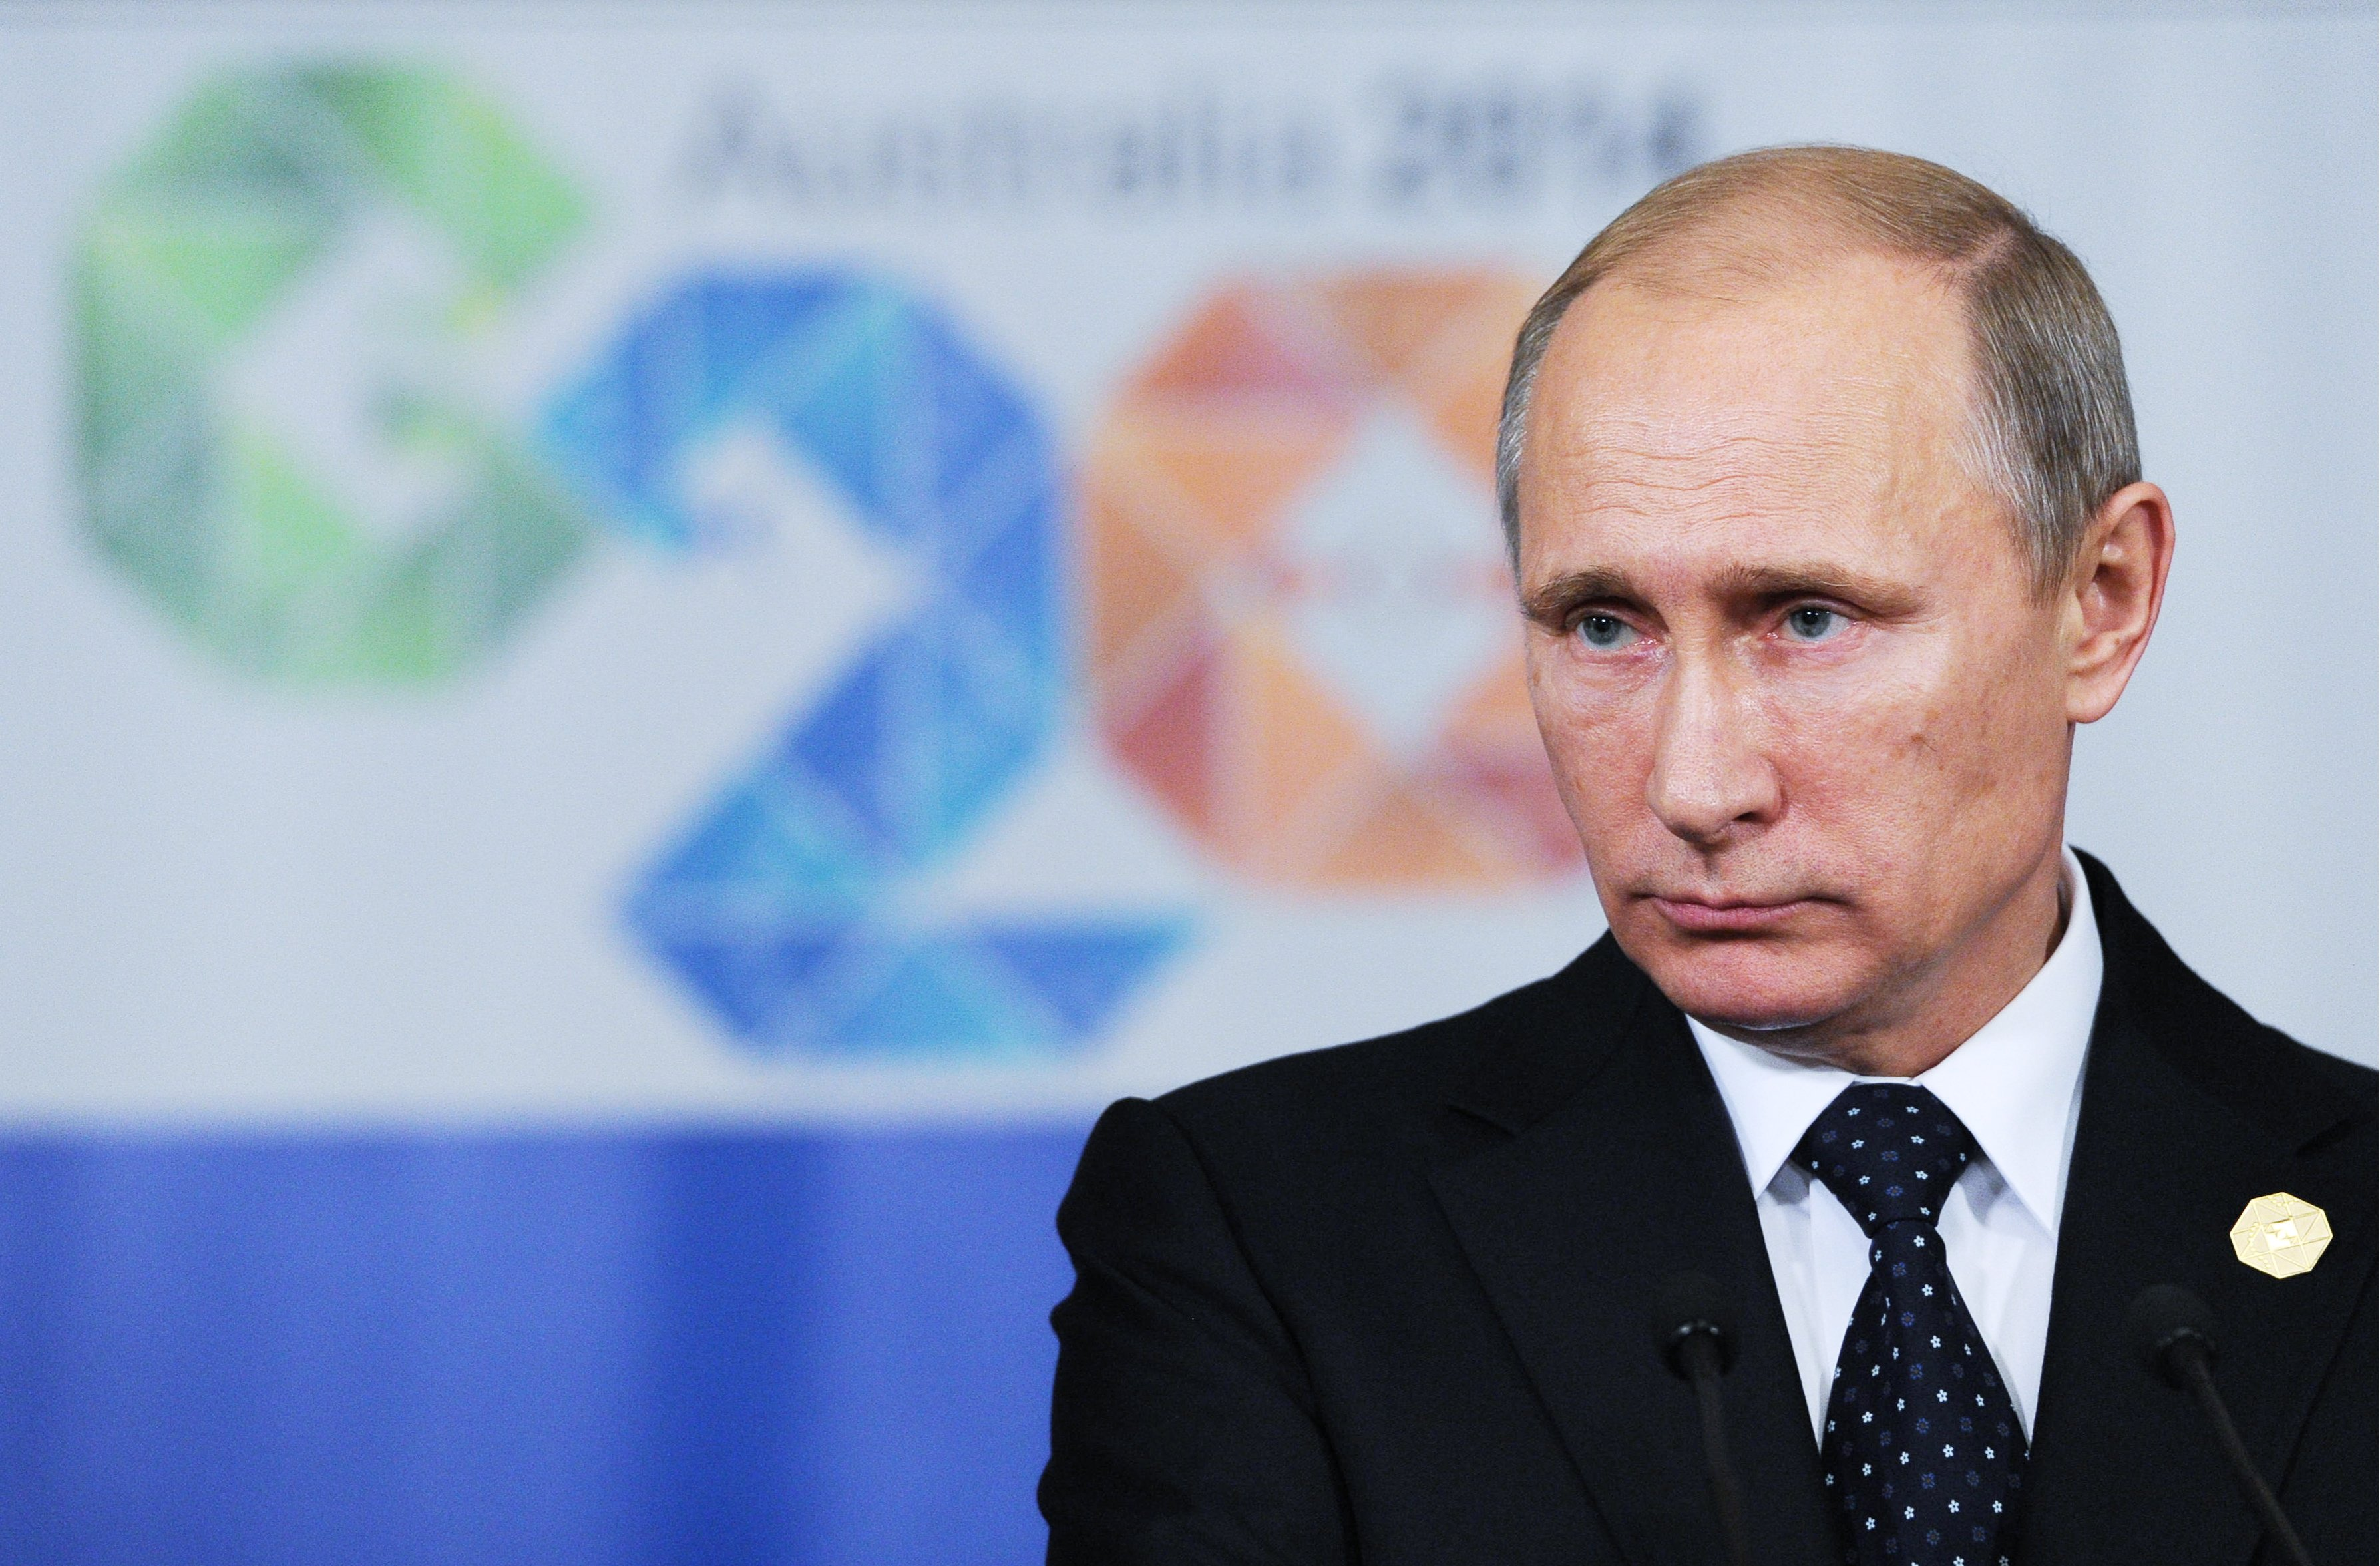 Russia's President Vladimir Putin looks on at a press conference following the G20 Leaders' Summit in Brisbane, Australia.